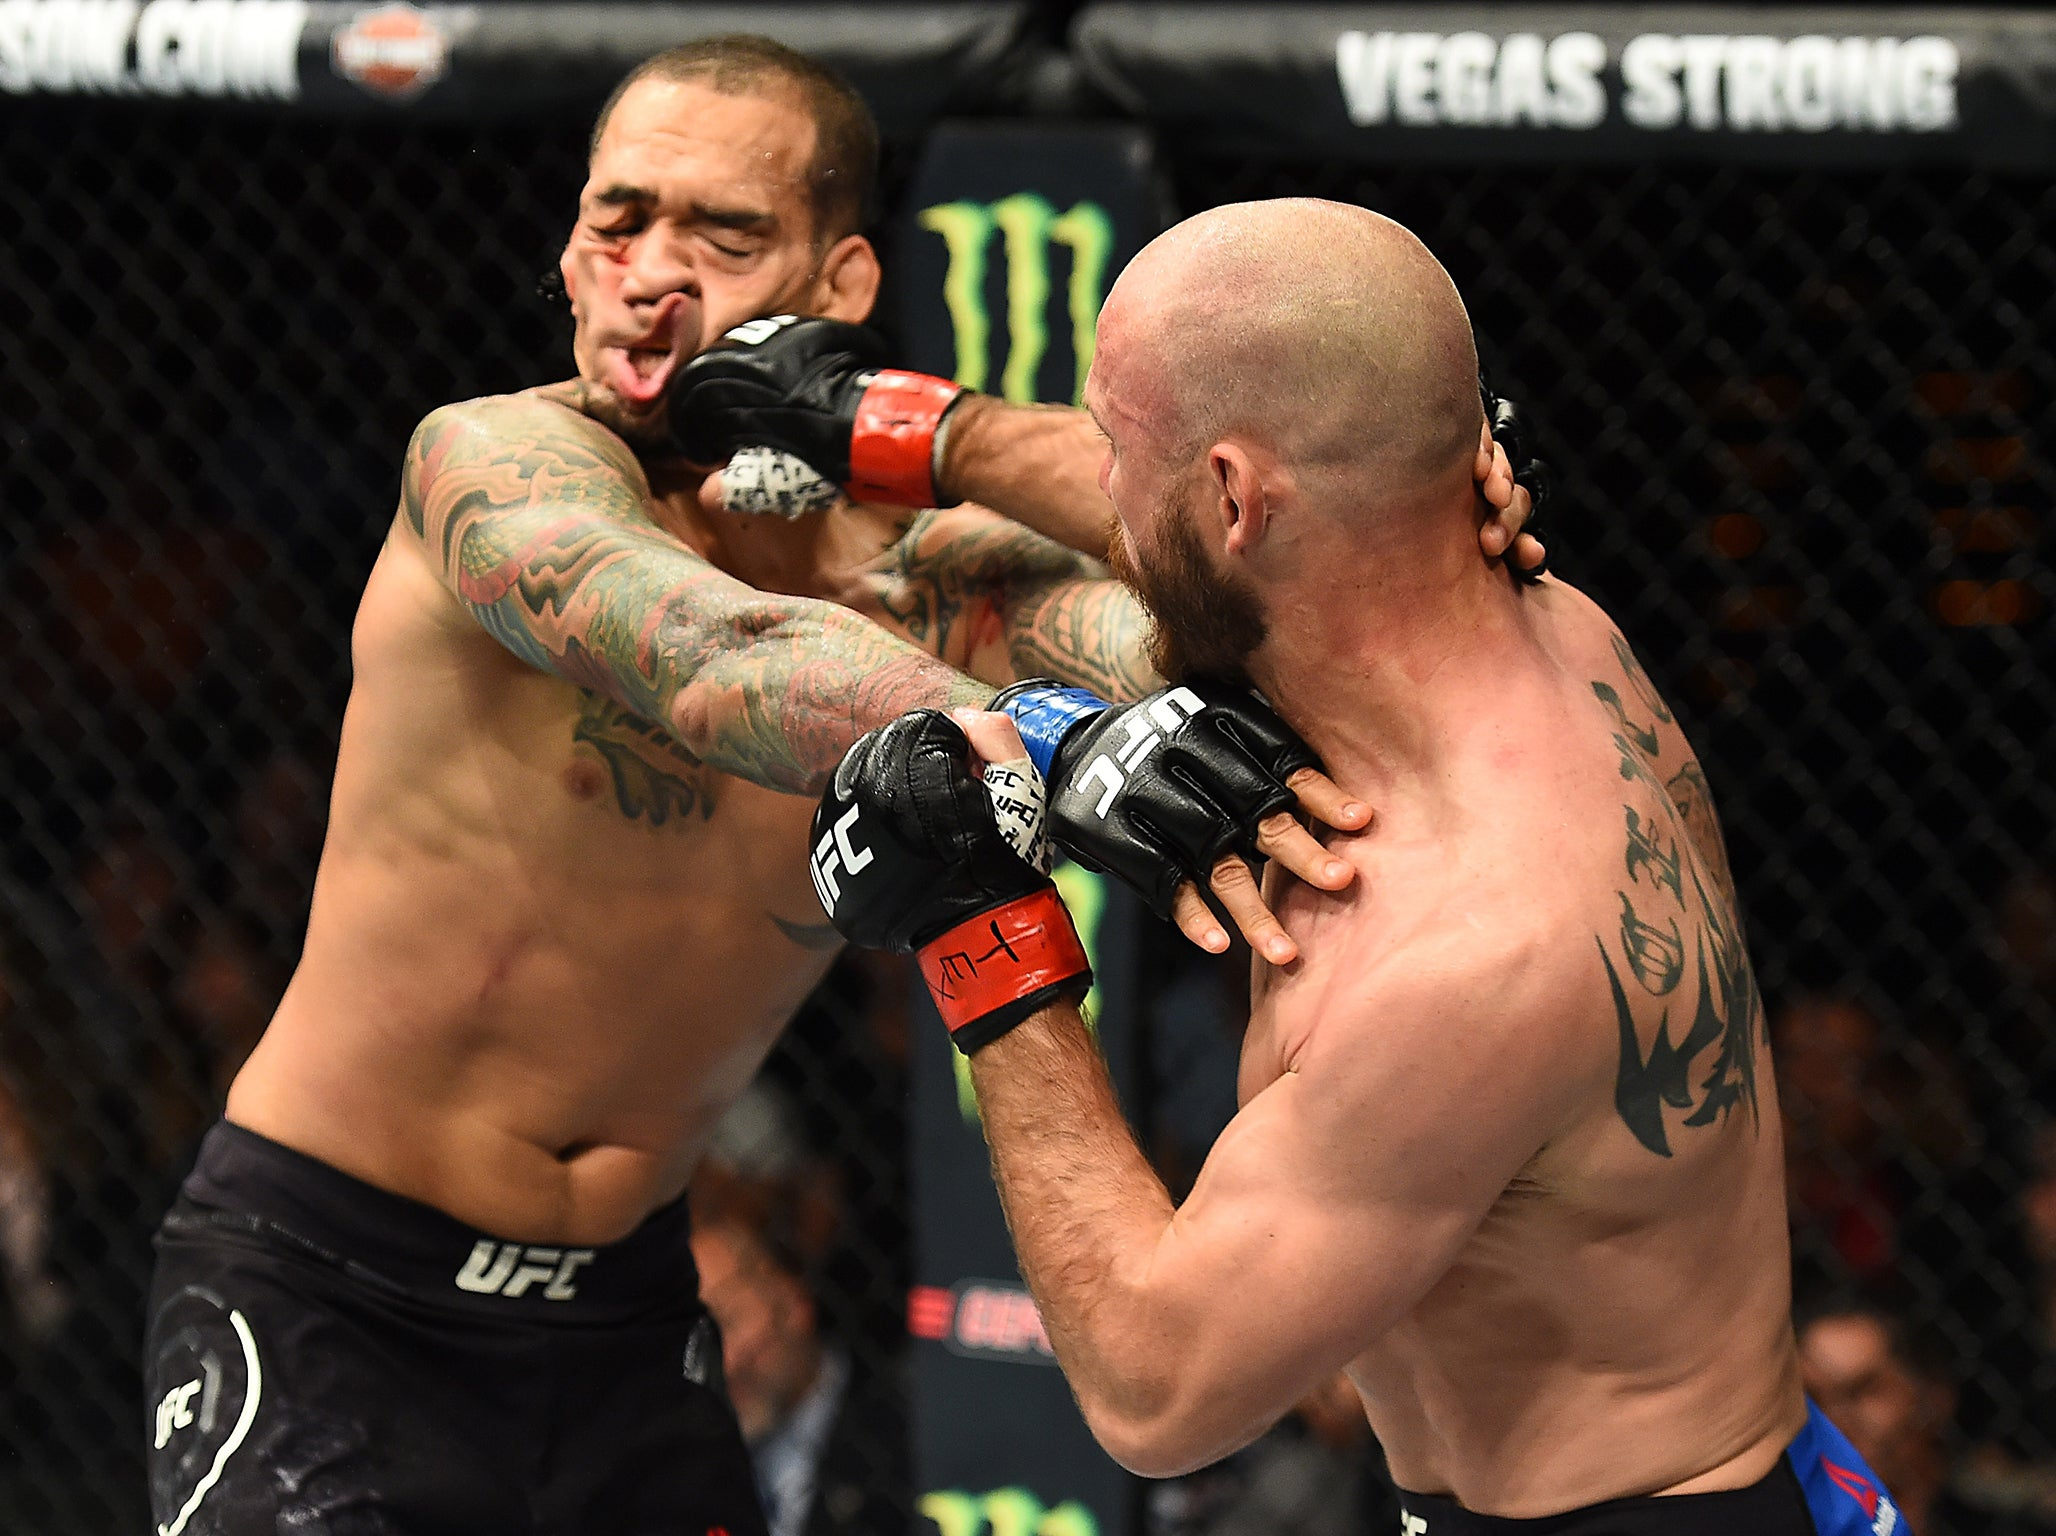 UFC Fight Night 126 results: Donald 'Cowboy' Cerrone back in business with big victory over Yancy Medeiros